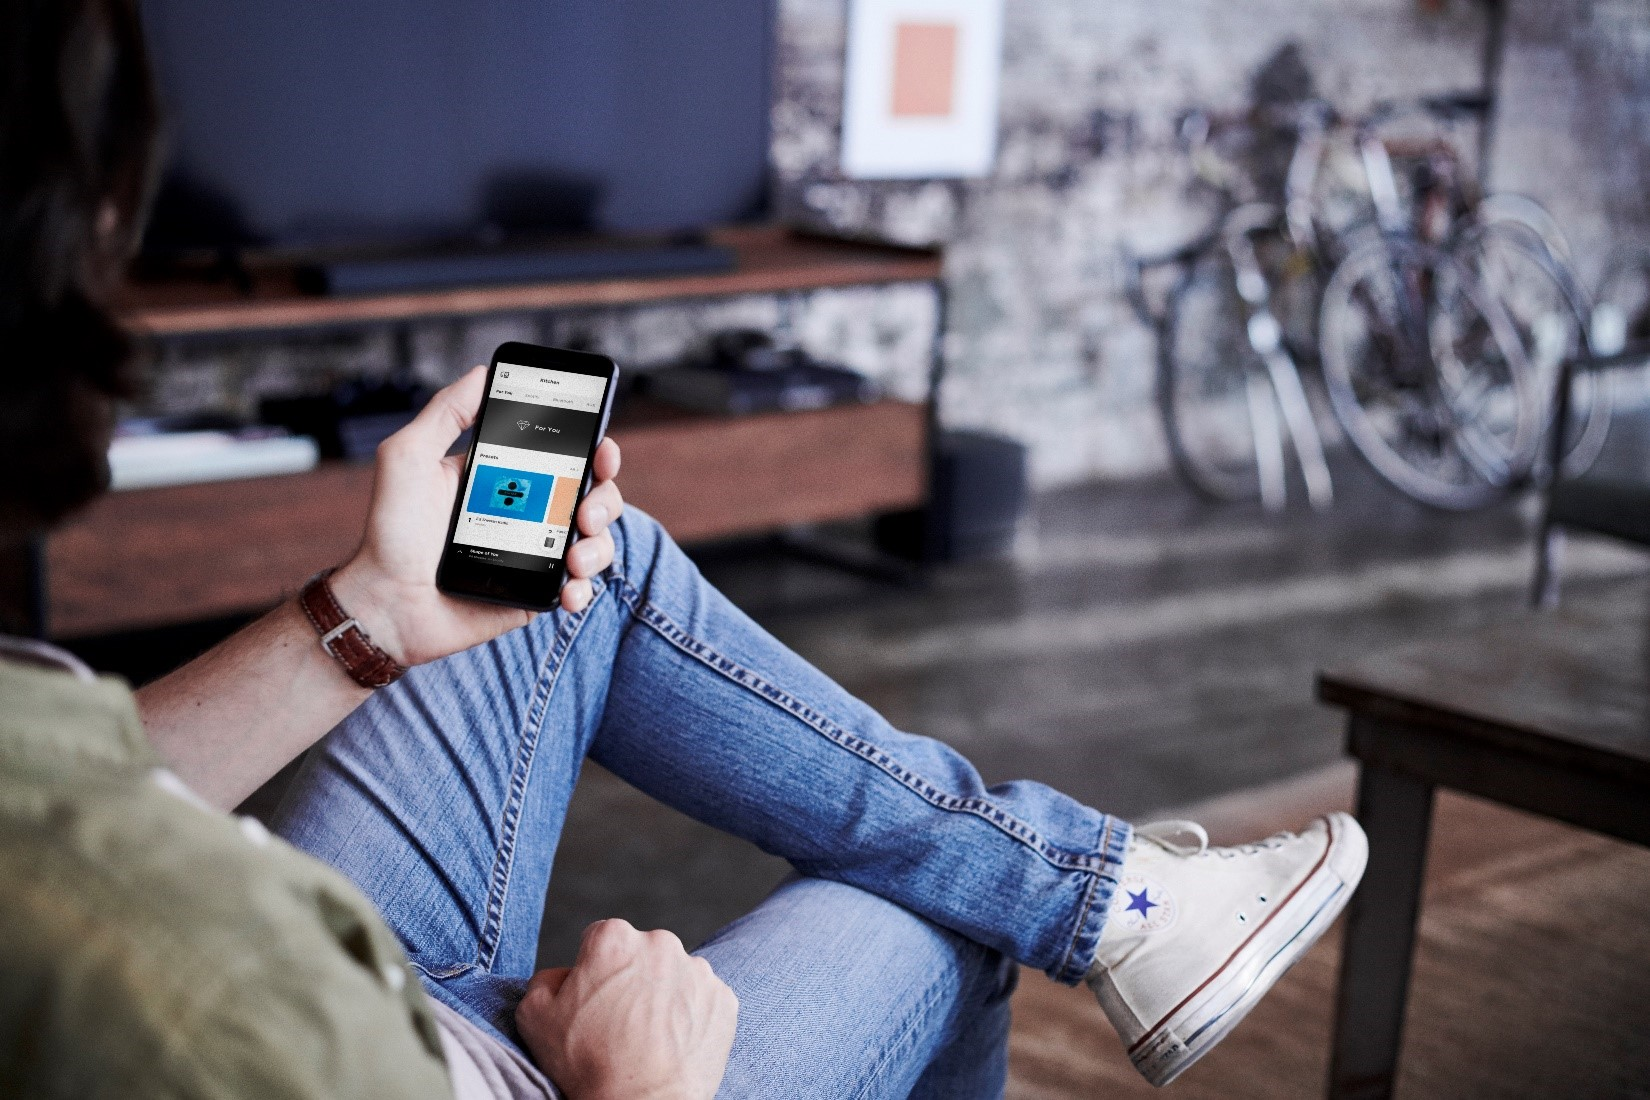 One-Touch access with Bose app